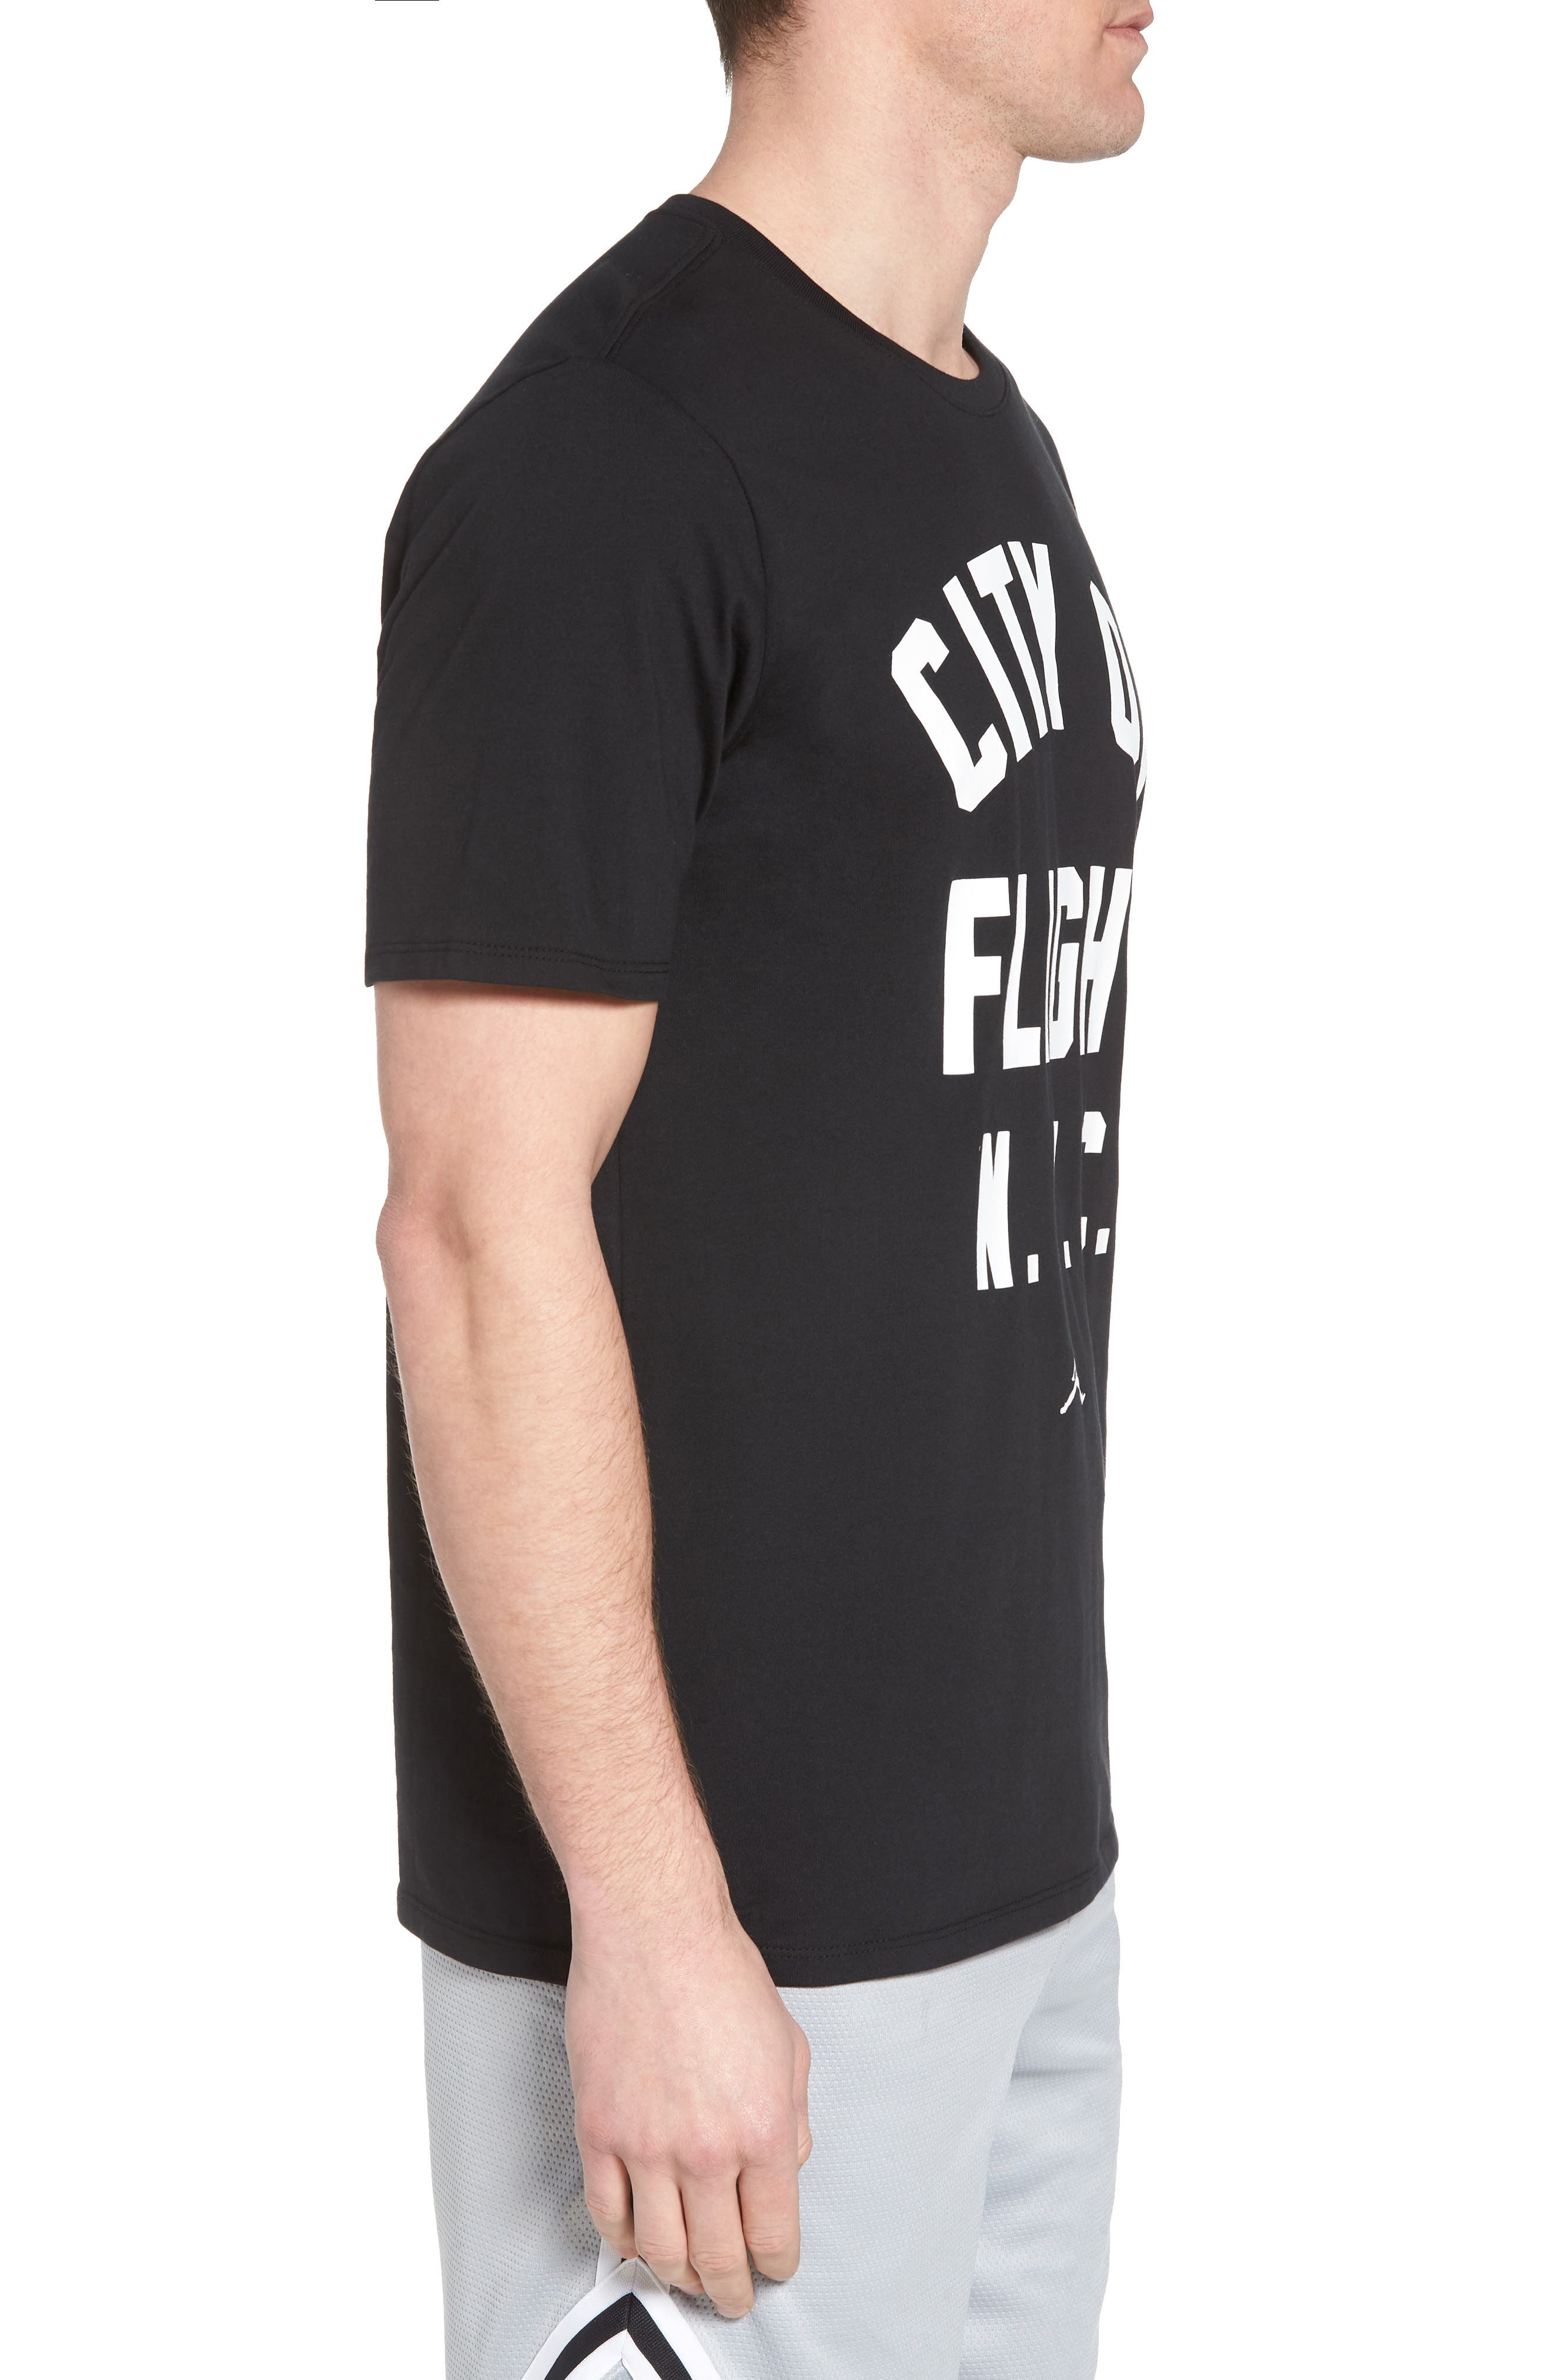 Sportswear City of Flight T-Shirt,                             Alternate thumbnail 3, color,                             011